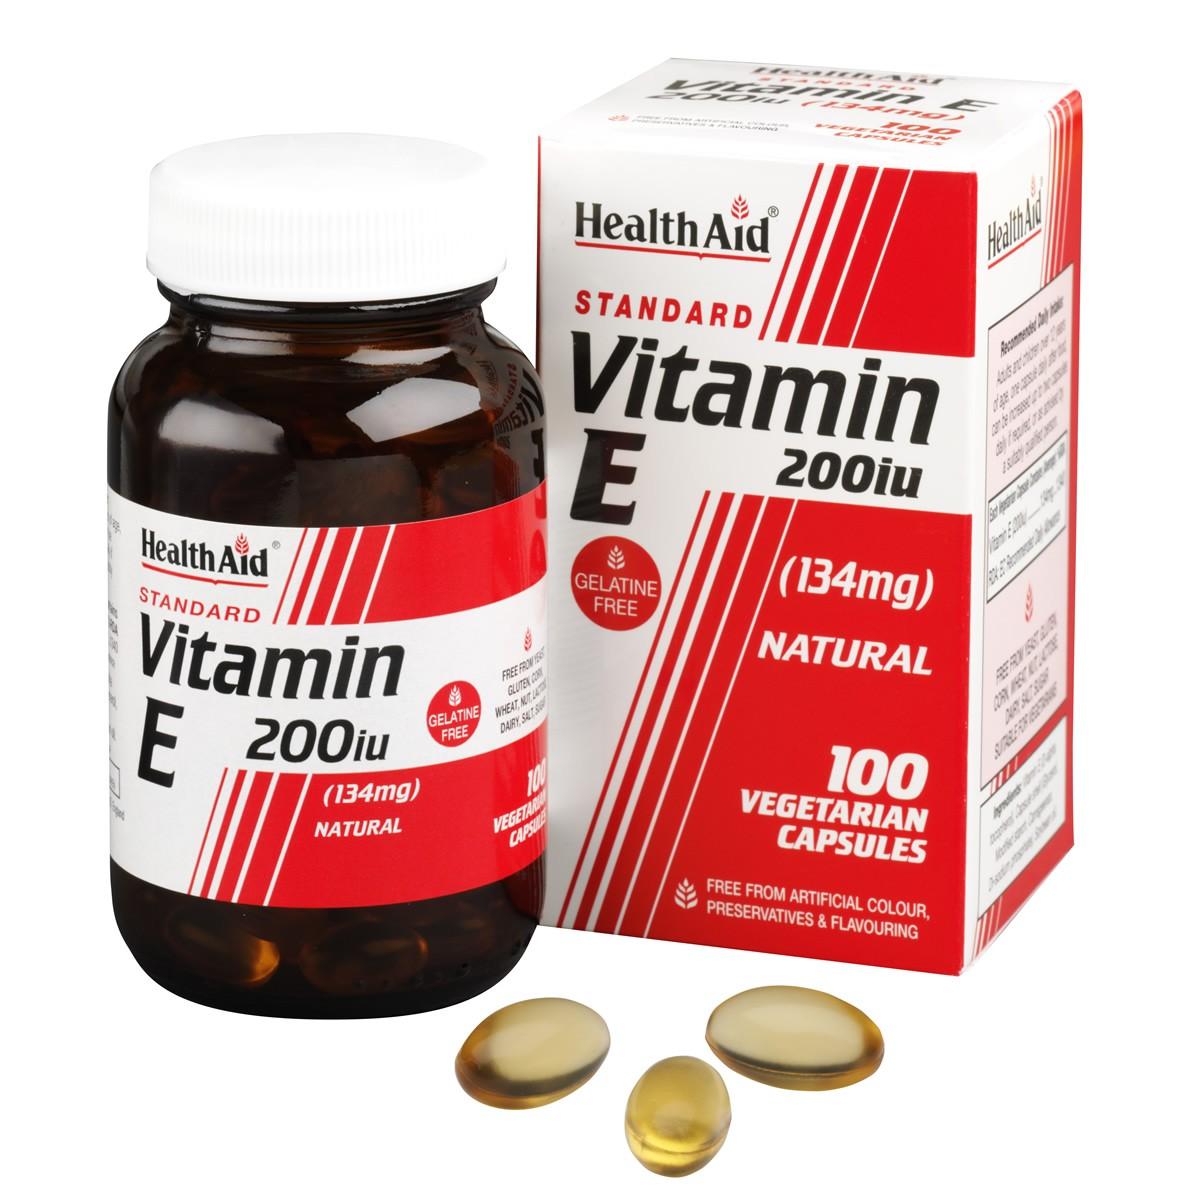 HealthAid Vitamin E 200iu Natural Vegicaps